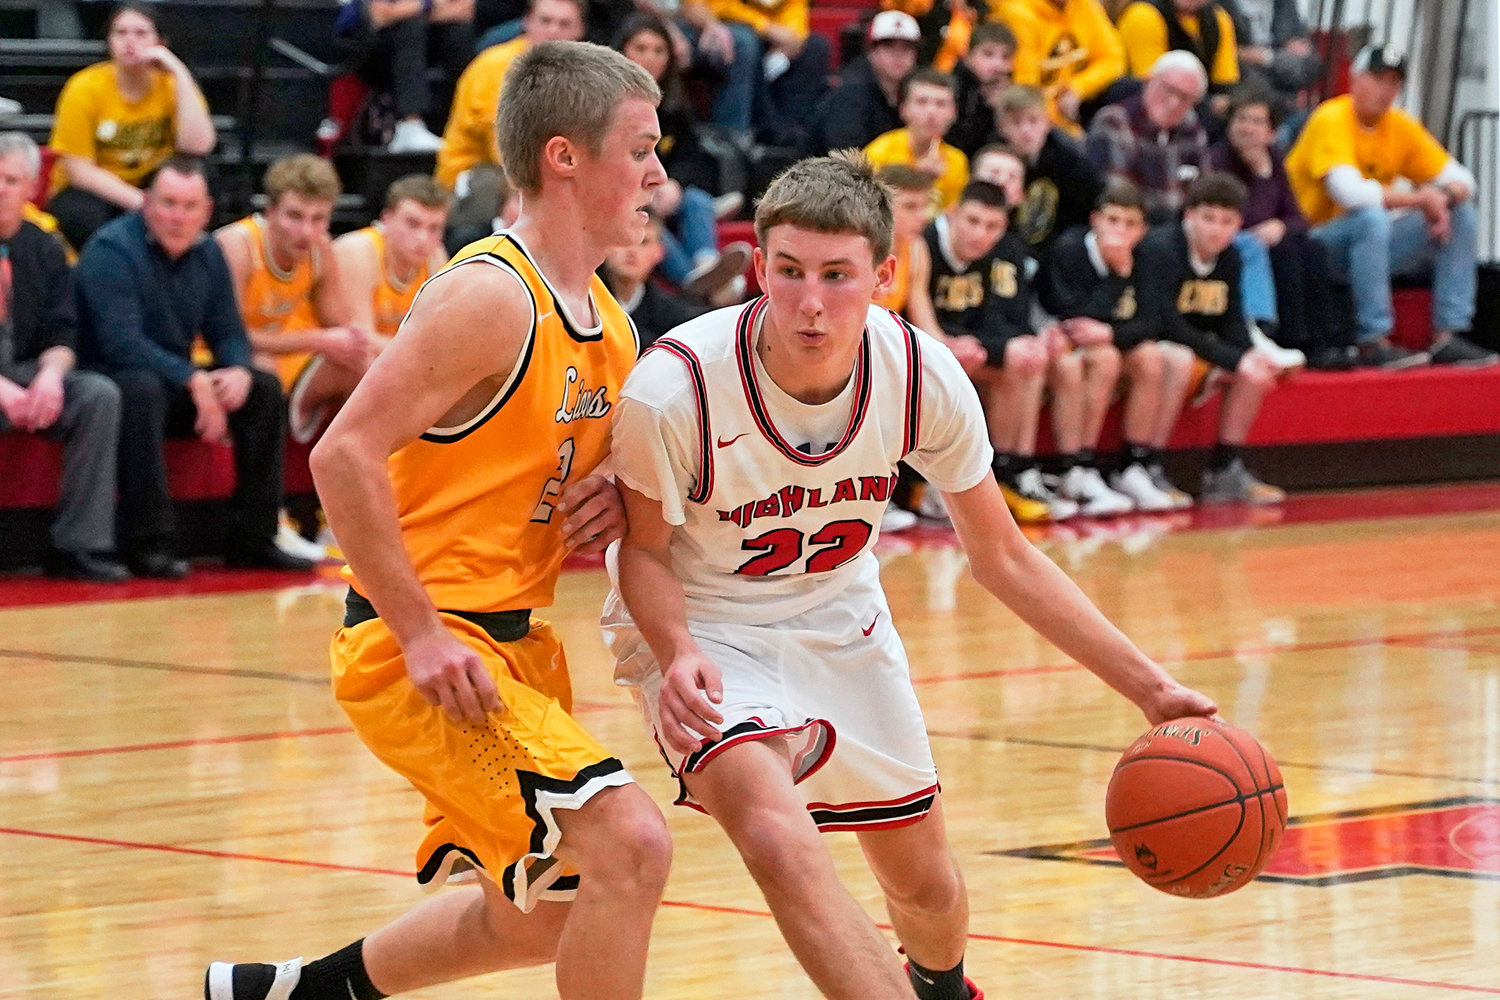 Huskie guard Mason McFarland is guarded by Tyler McCullough during a matchup between Highland and Lone Tree on January 9, 2020.